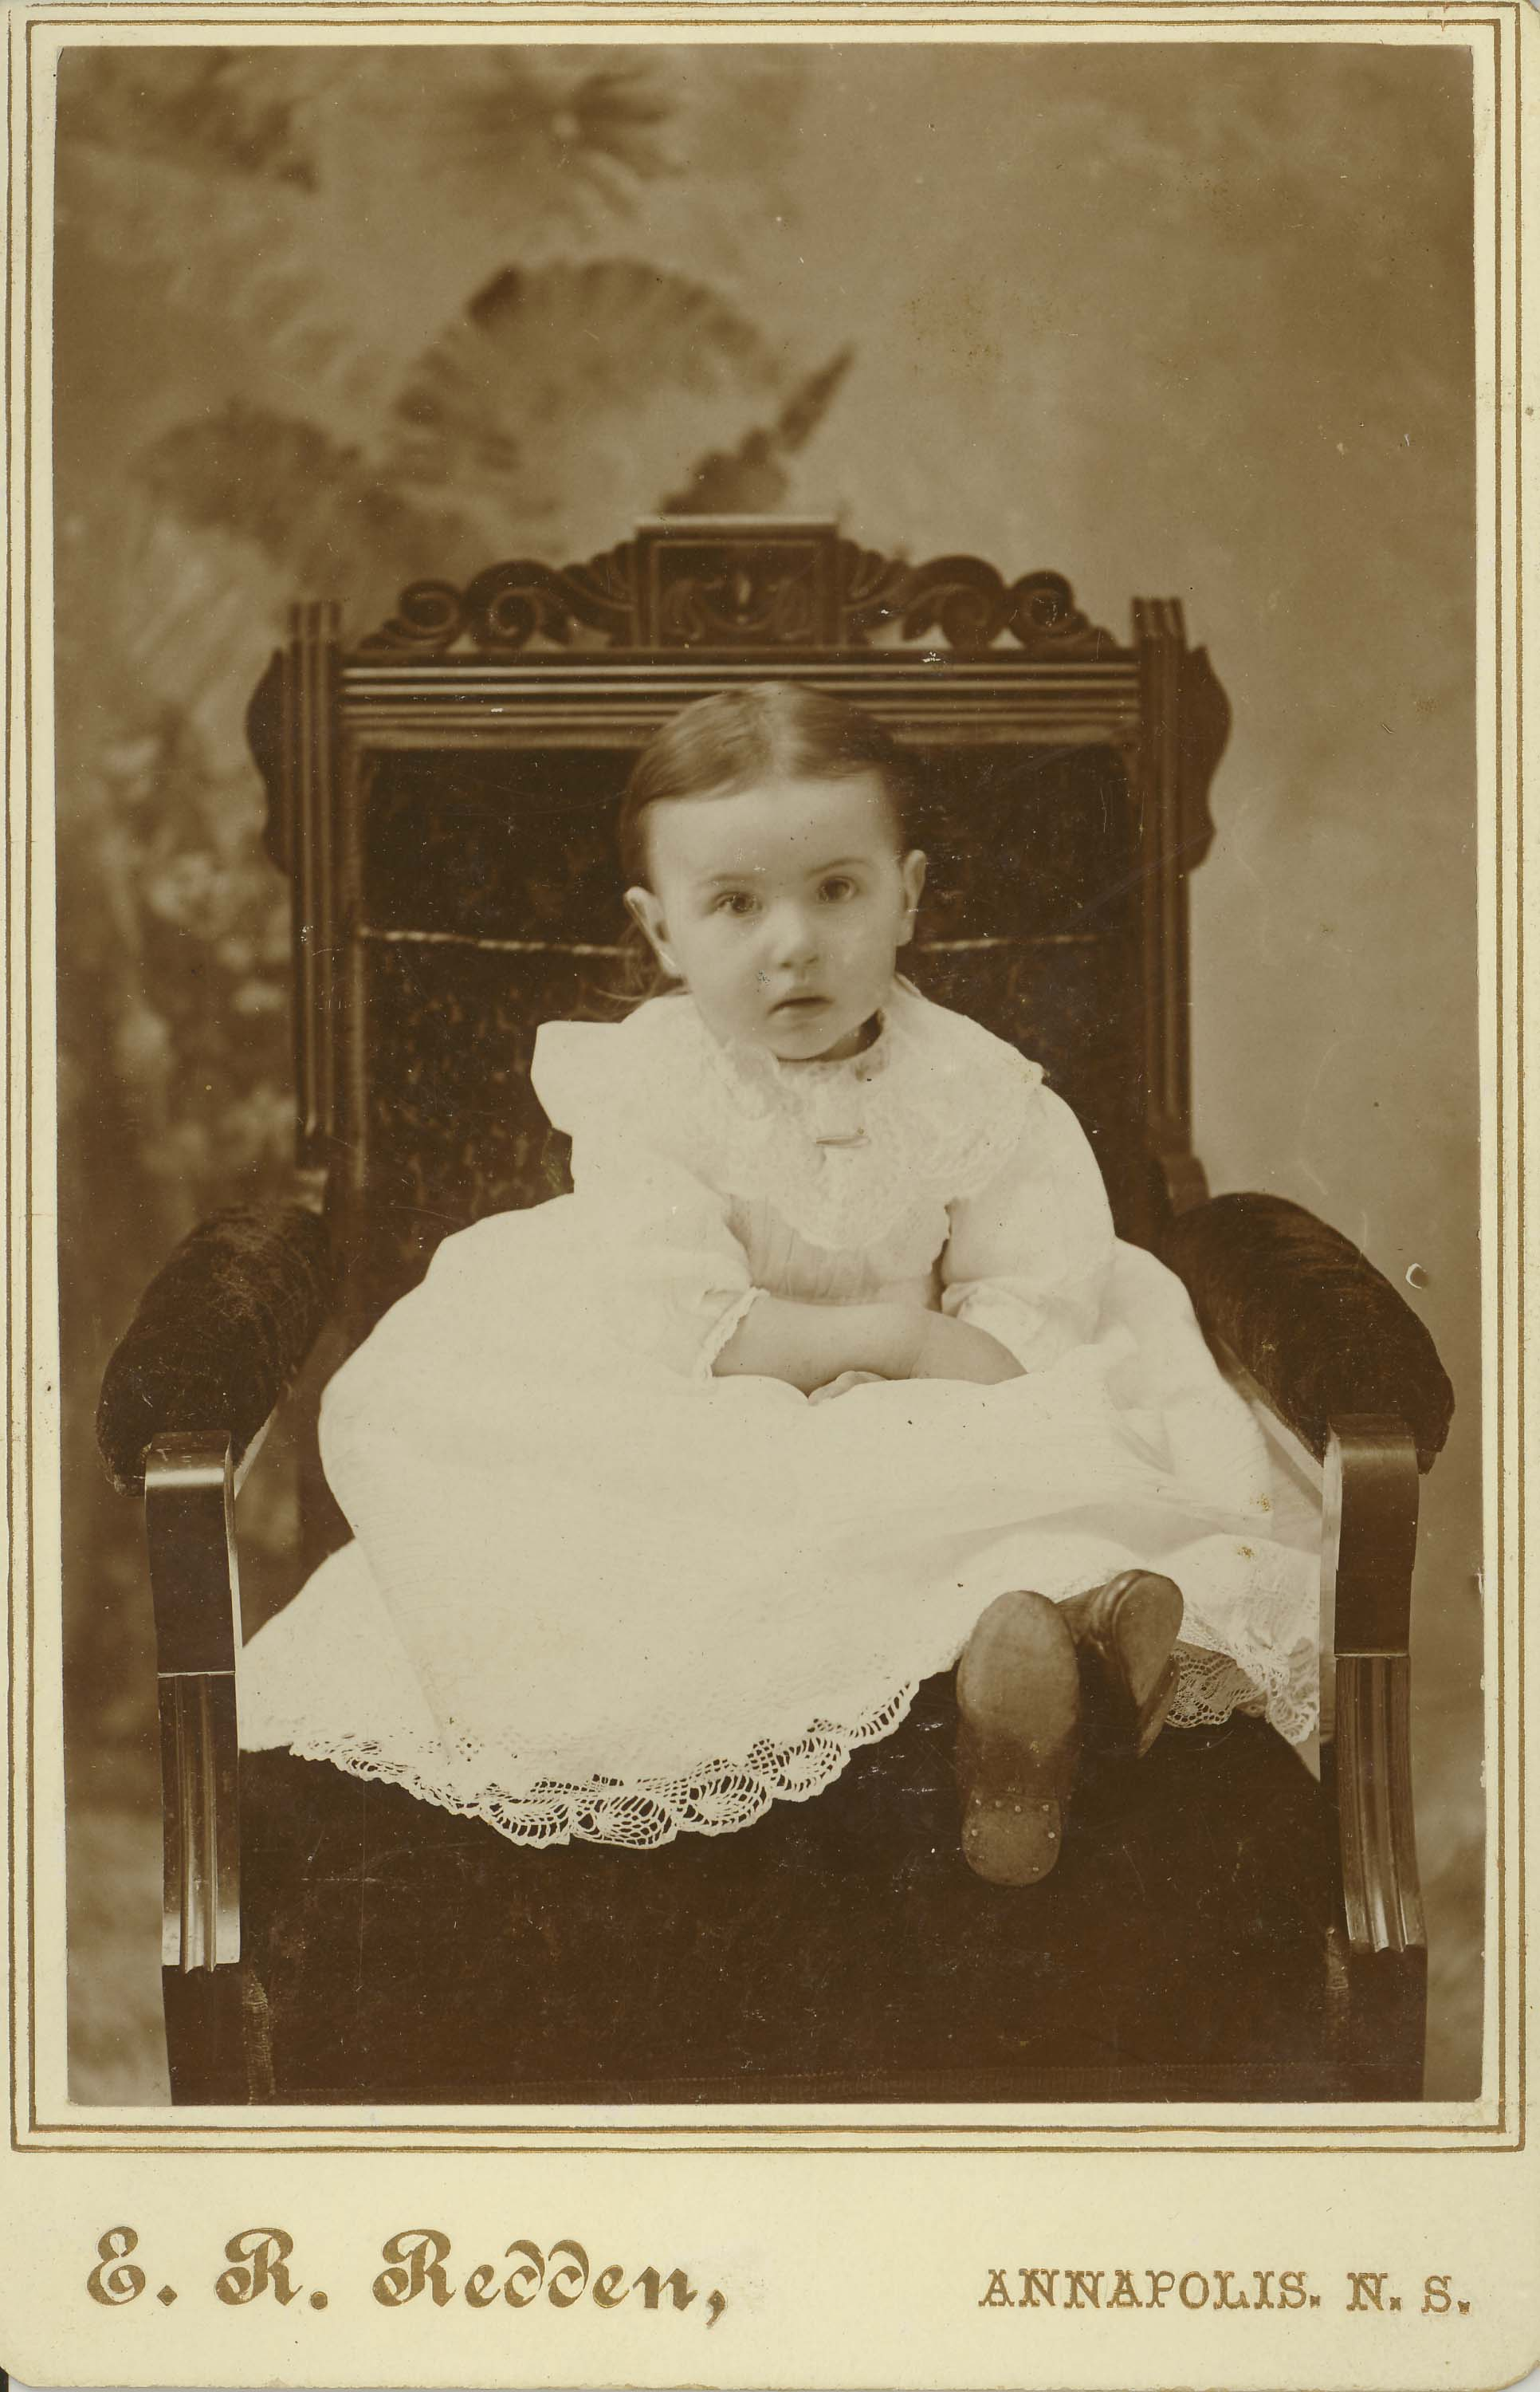 Photo-5-Toddler-in-upholstered-chair-Redden-Annapolis-NS